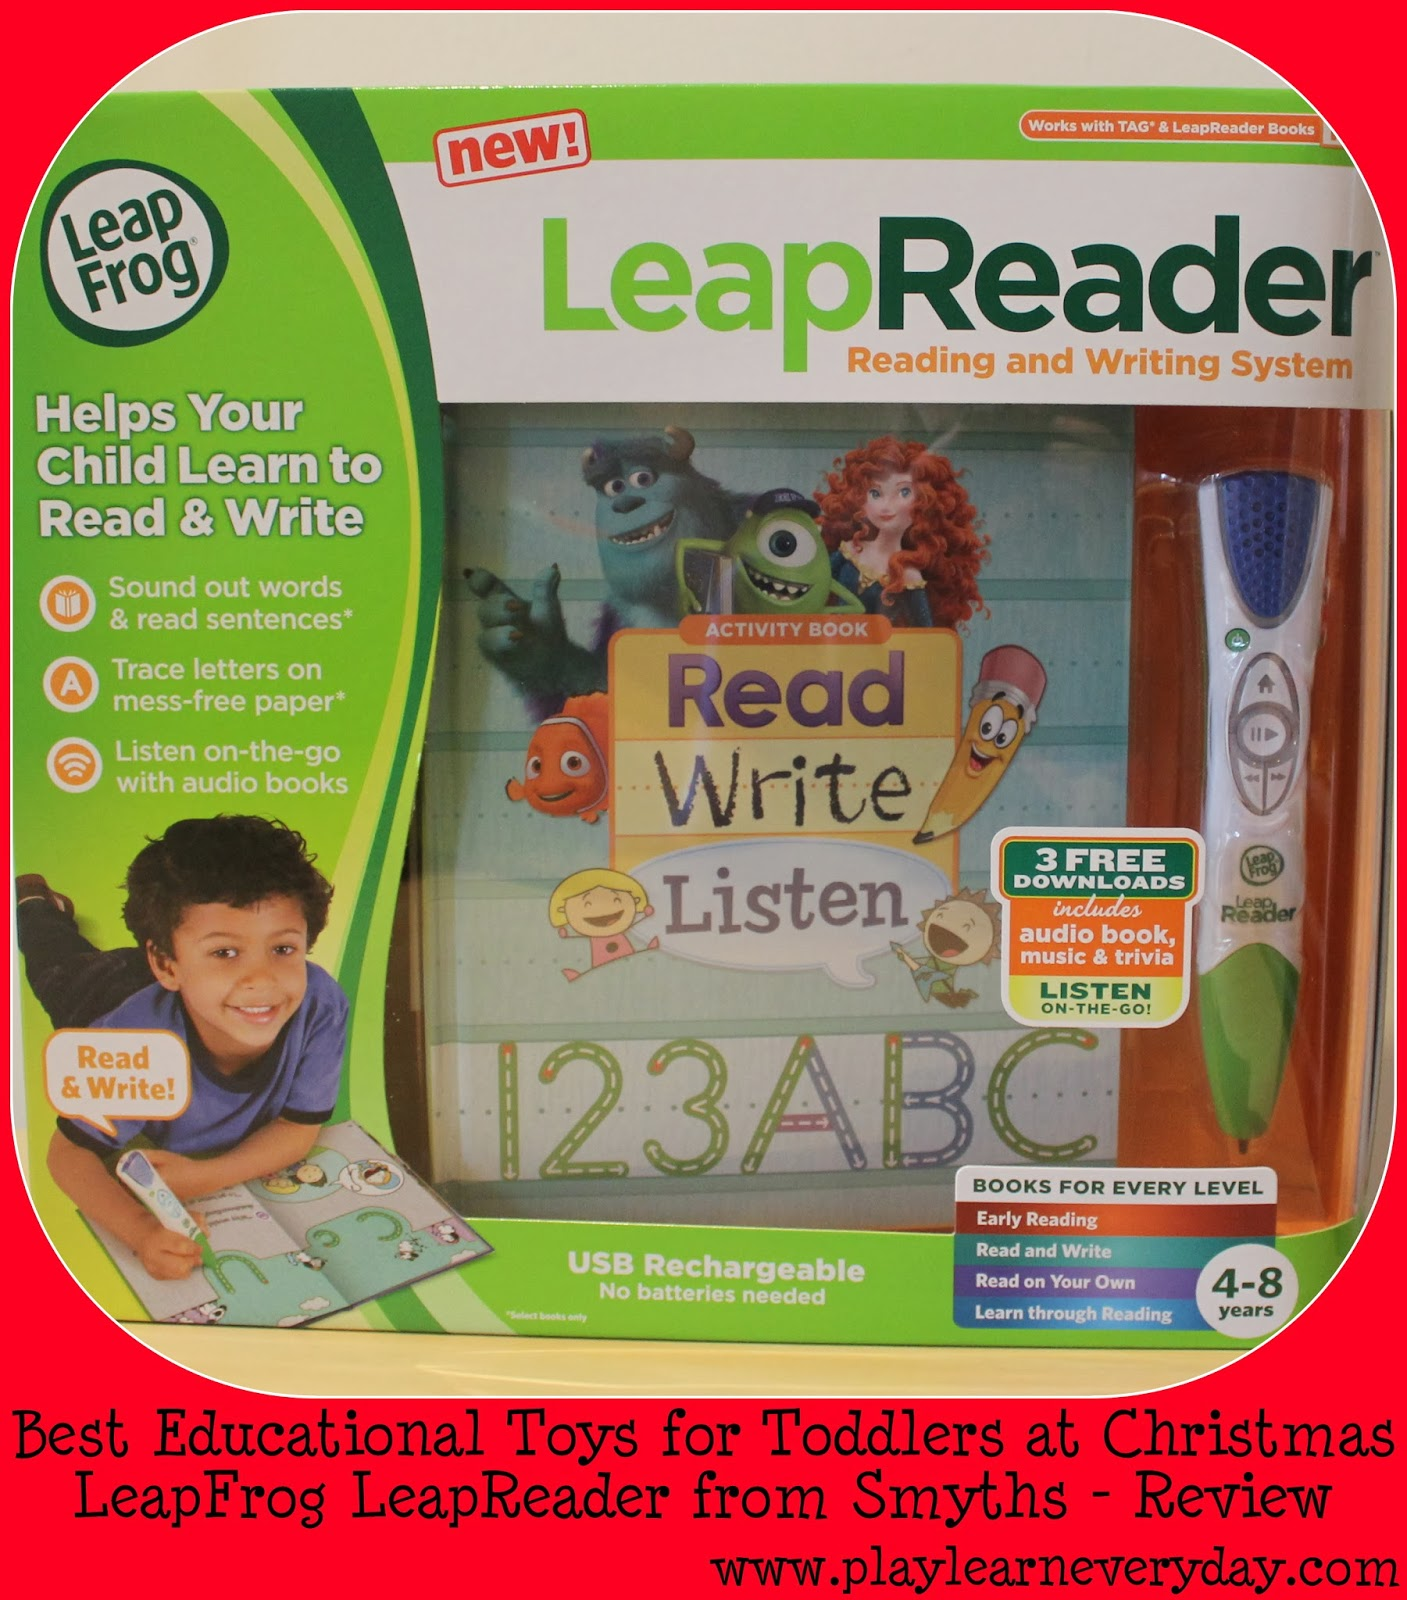 LeapFrog LeapReader from Smyths Educational Christmas Toy Review